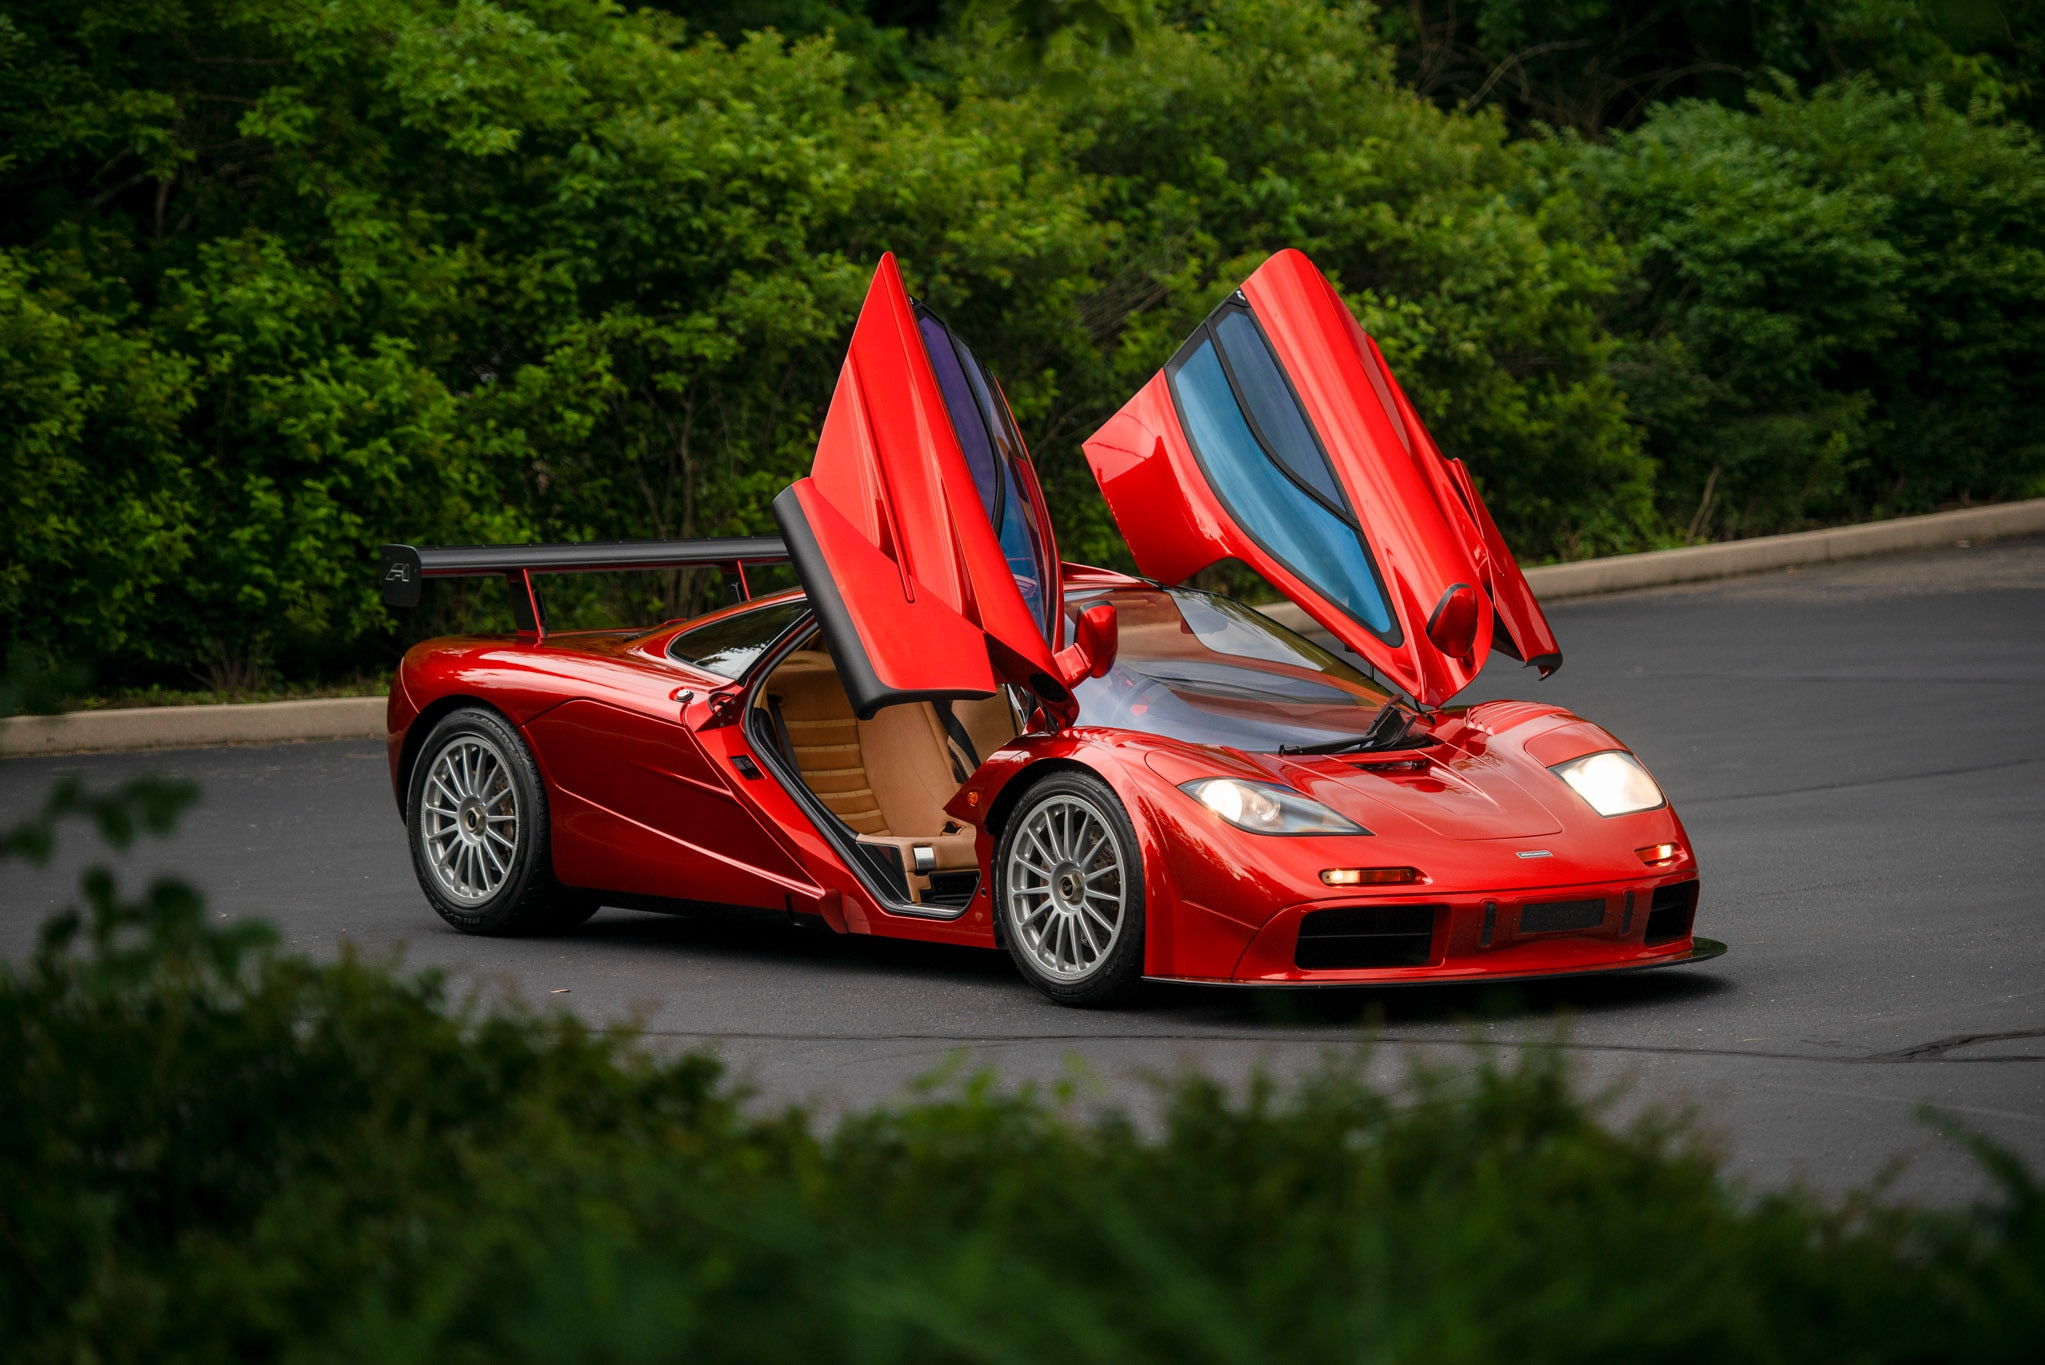 RM Sotheby's Headlines New Private Sales Program with McLaren F1 ...